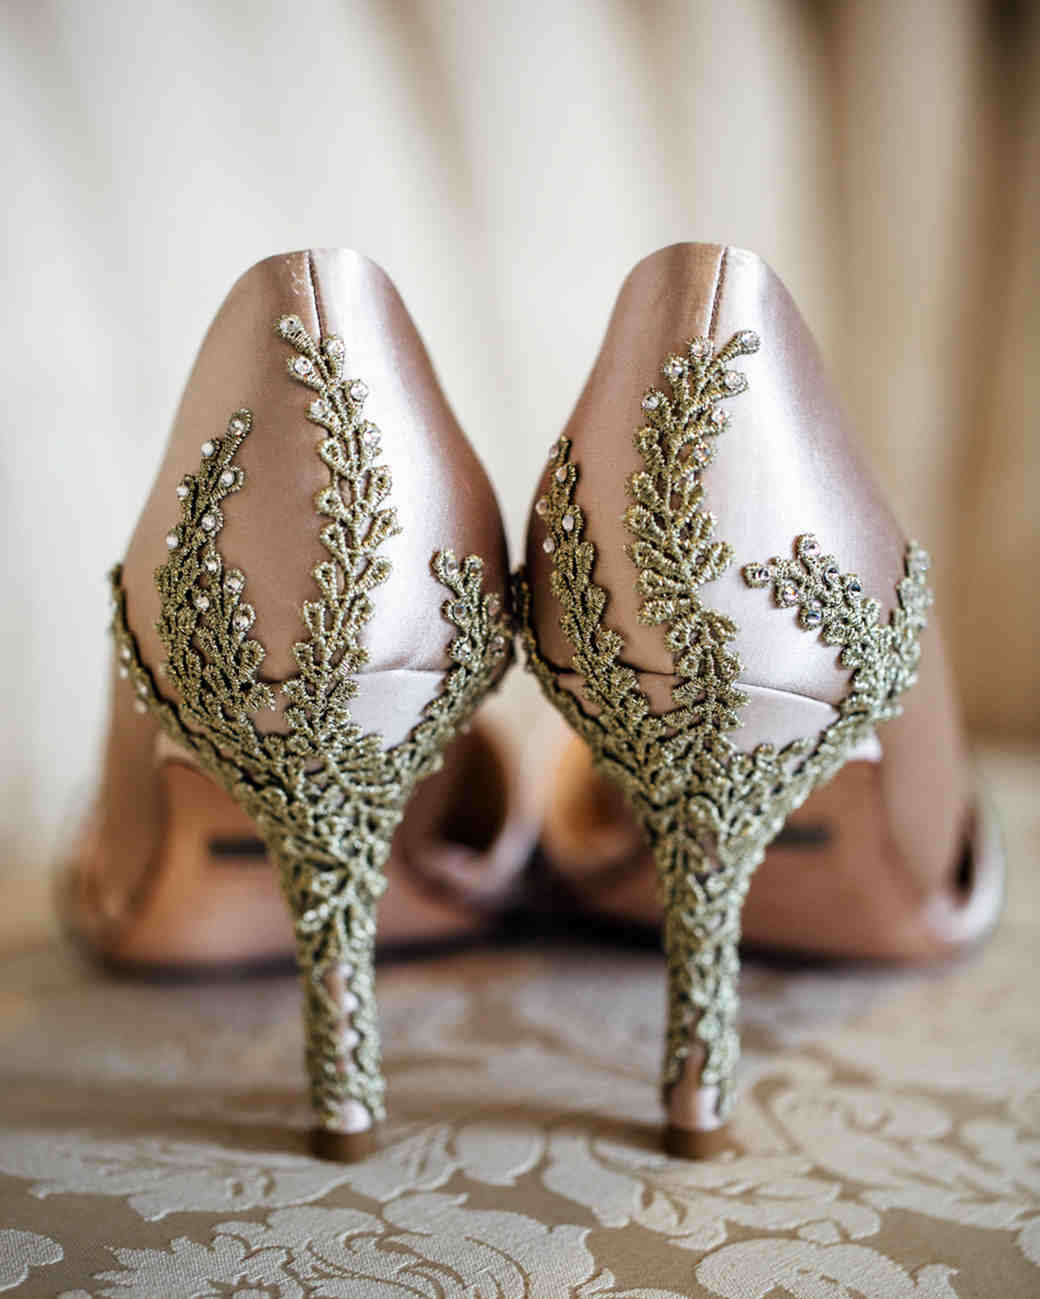 thea-rachit-wedding-shoes-0022-s112016-0715.jpg